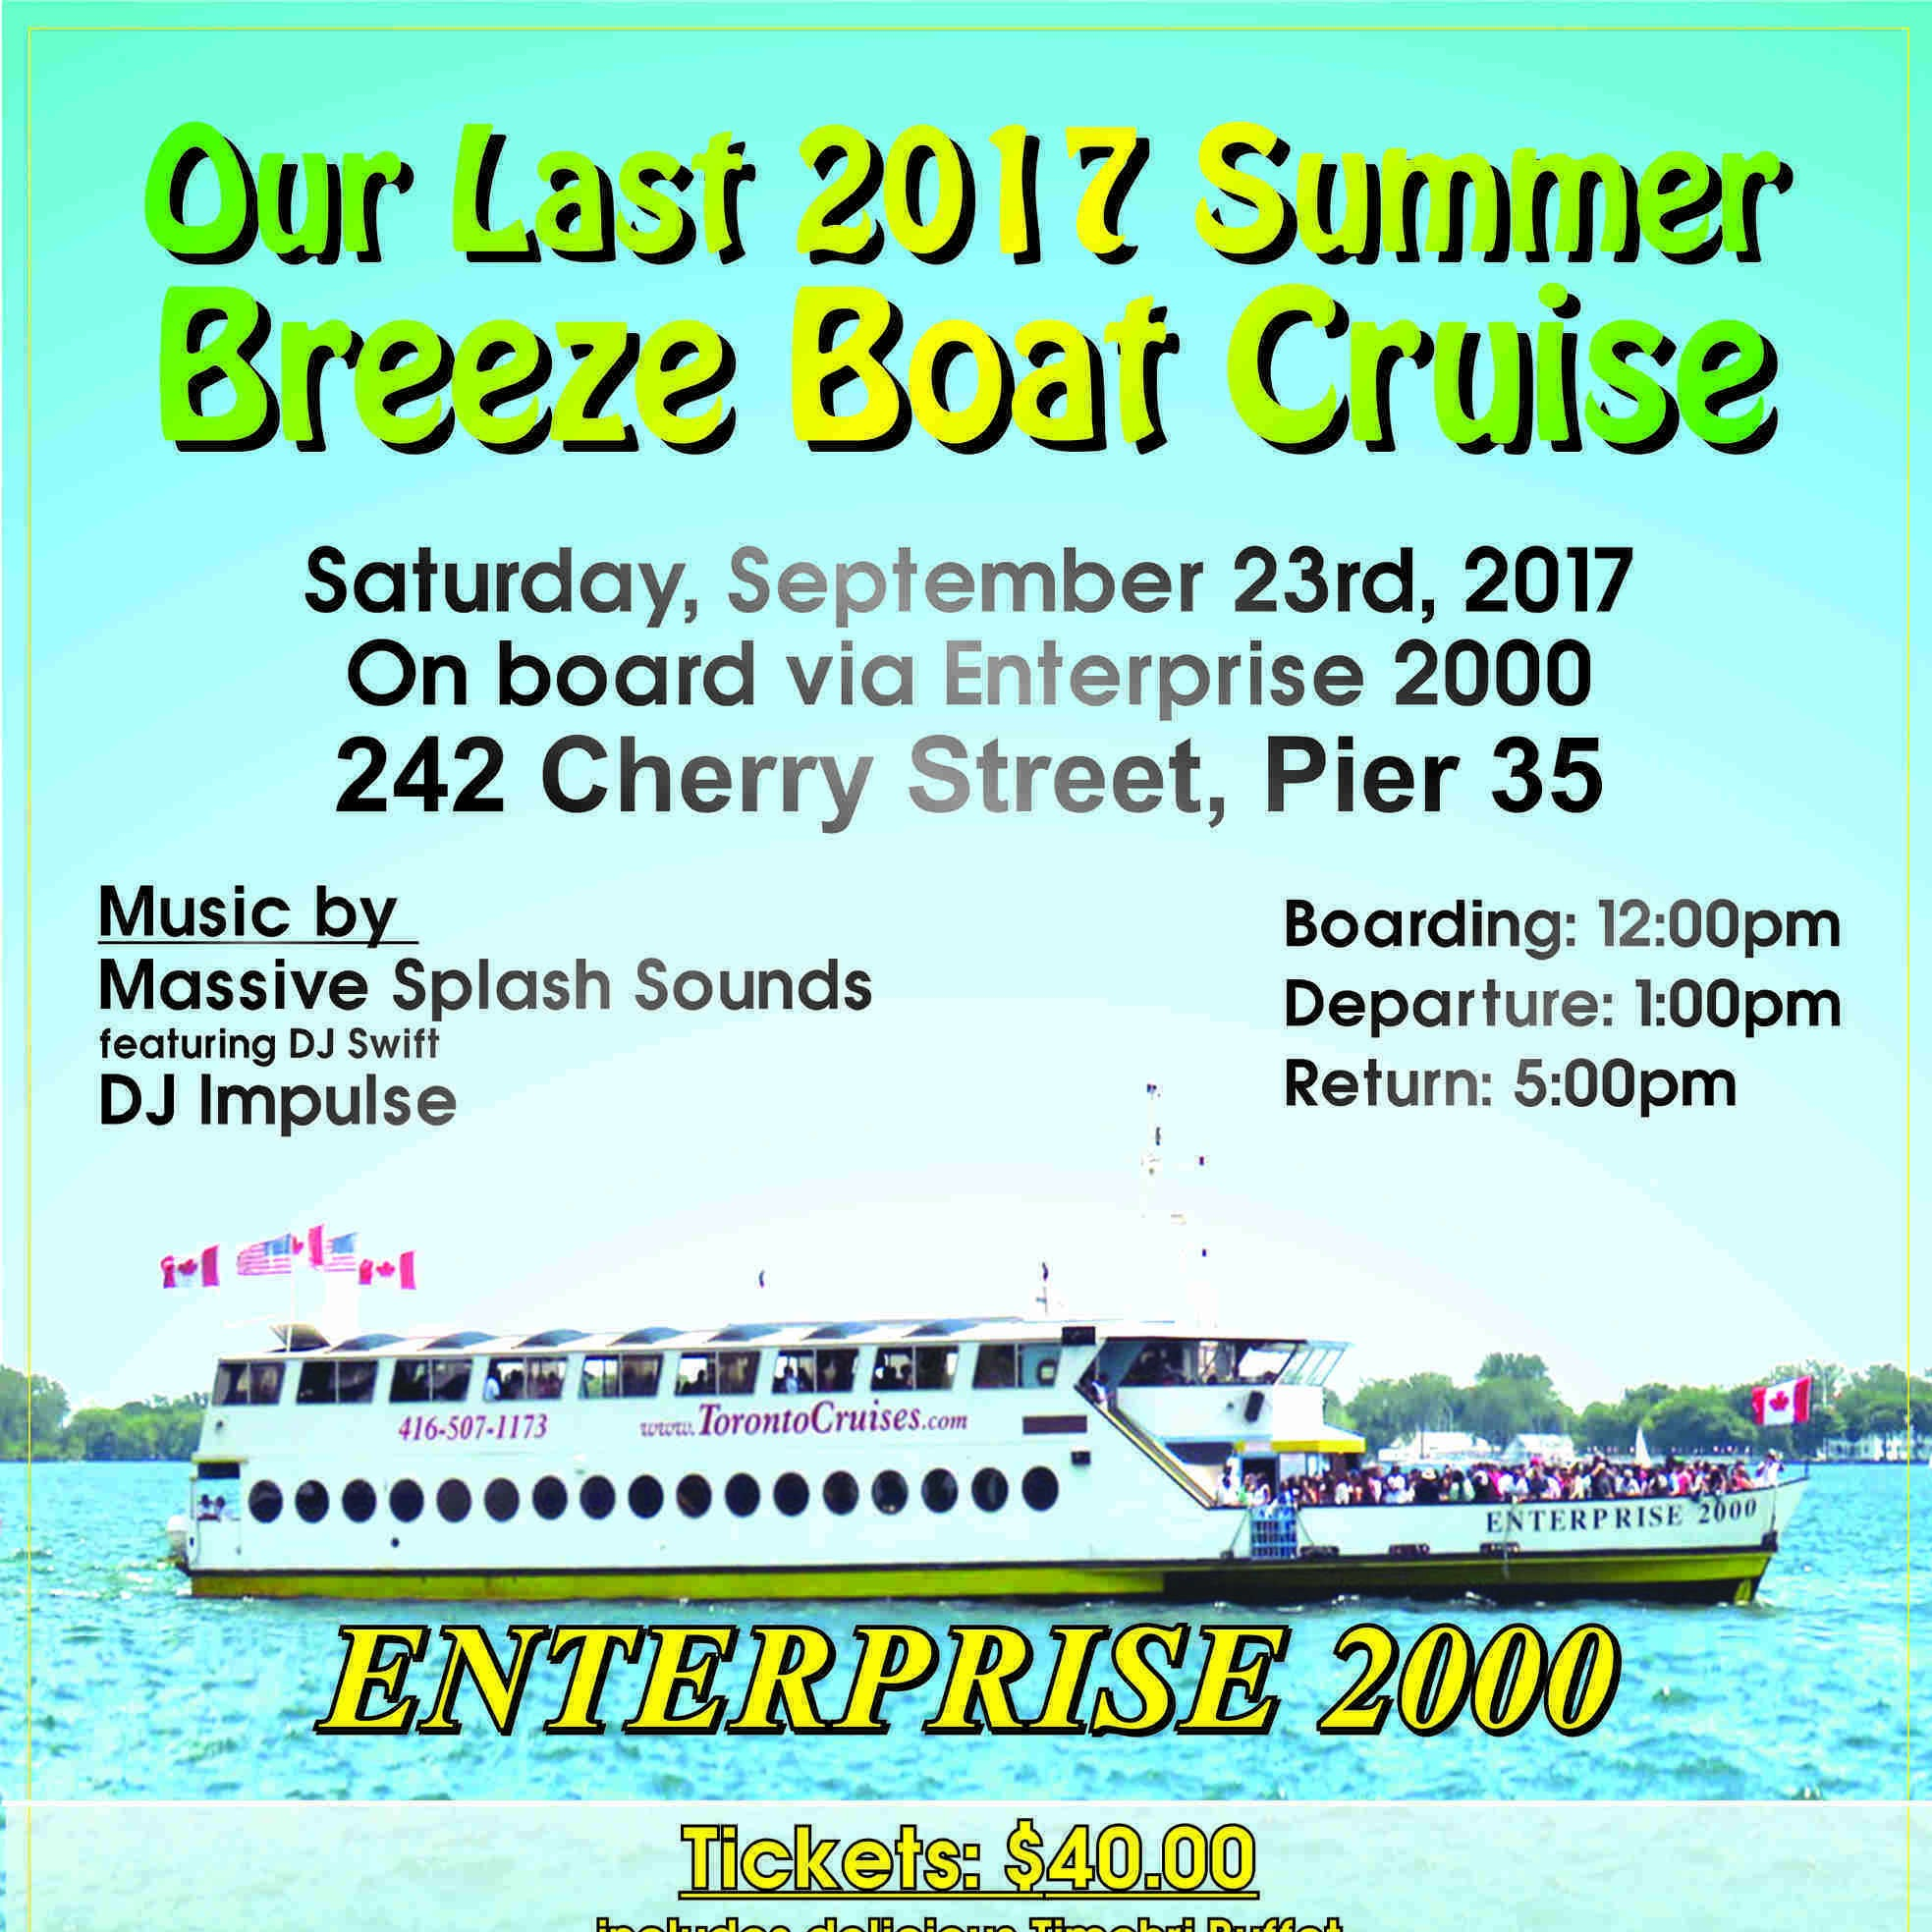 OUR LAST 2017 SUMMER BREEZE BOAT CRUISE